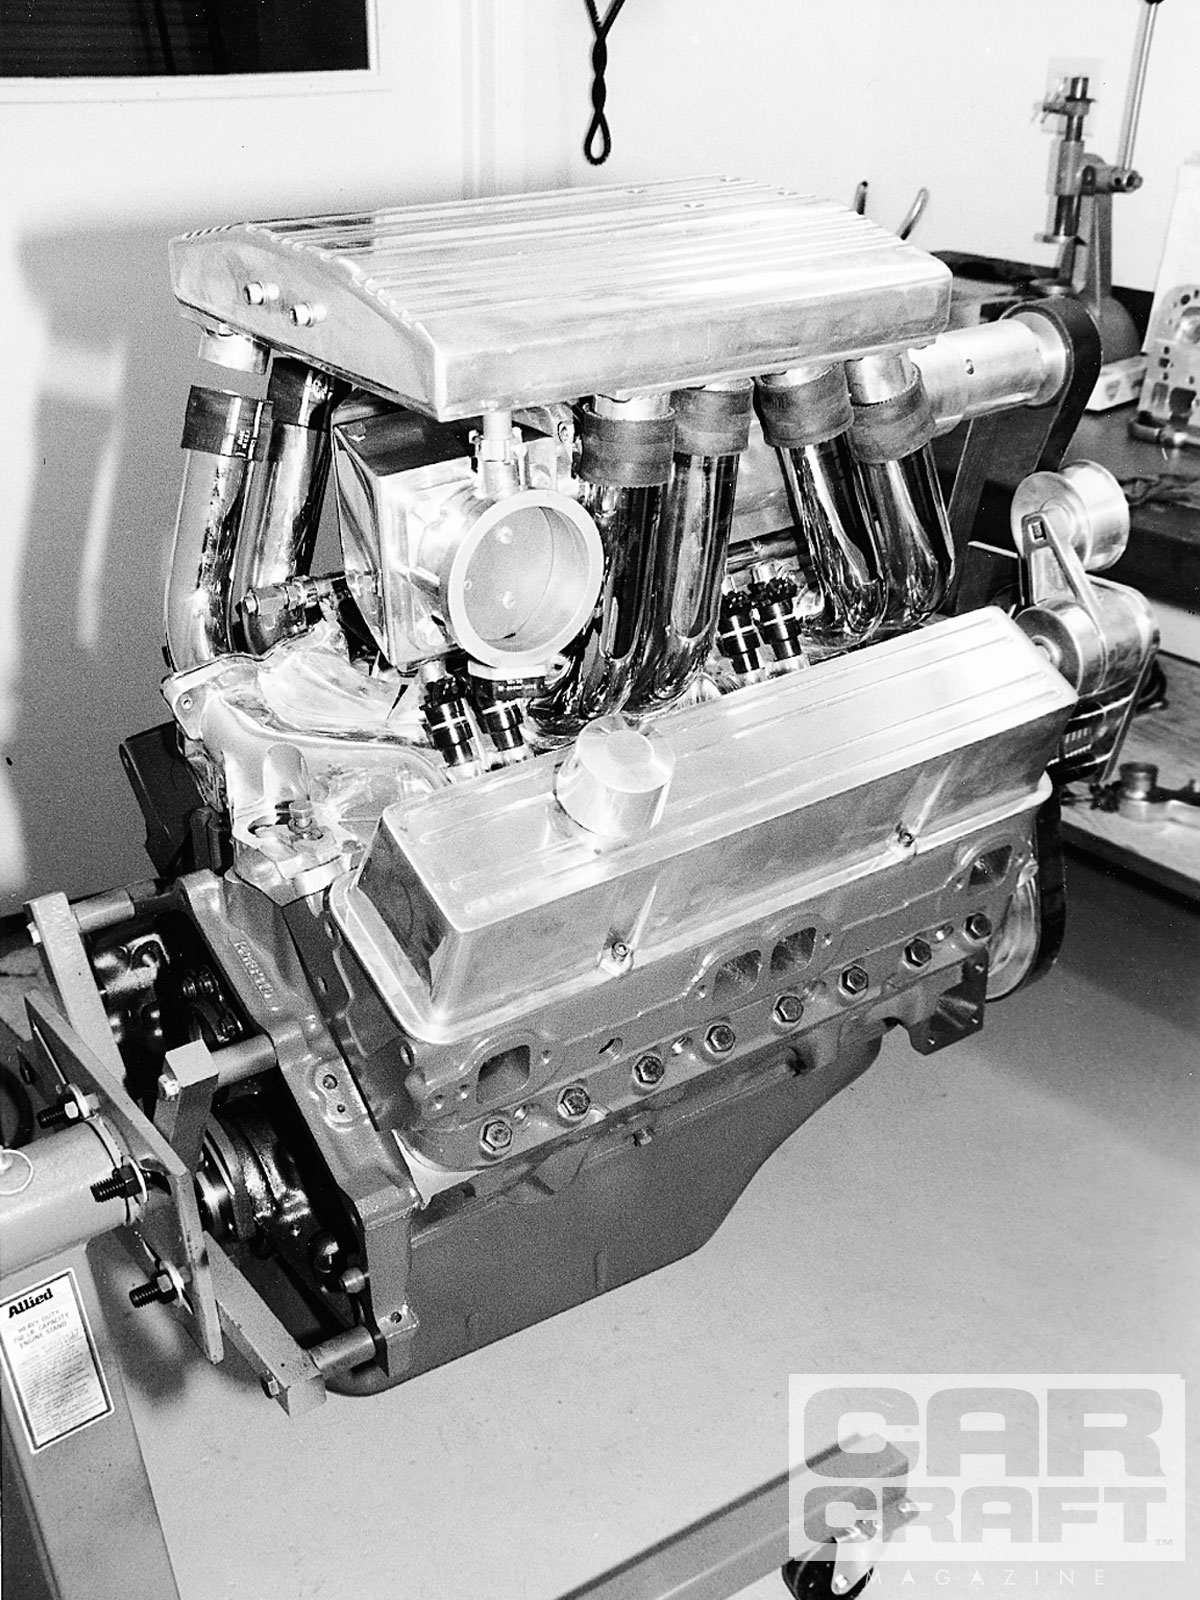 This custom-fabricated intake for a blown small-block Chevy features a common plenum and individual tubular runners. Just like an adjustable exhaust system, the length can easily be altered to fine-tune the engine's torque band.